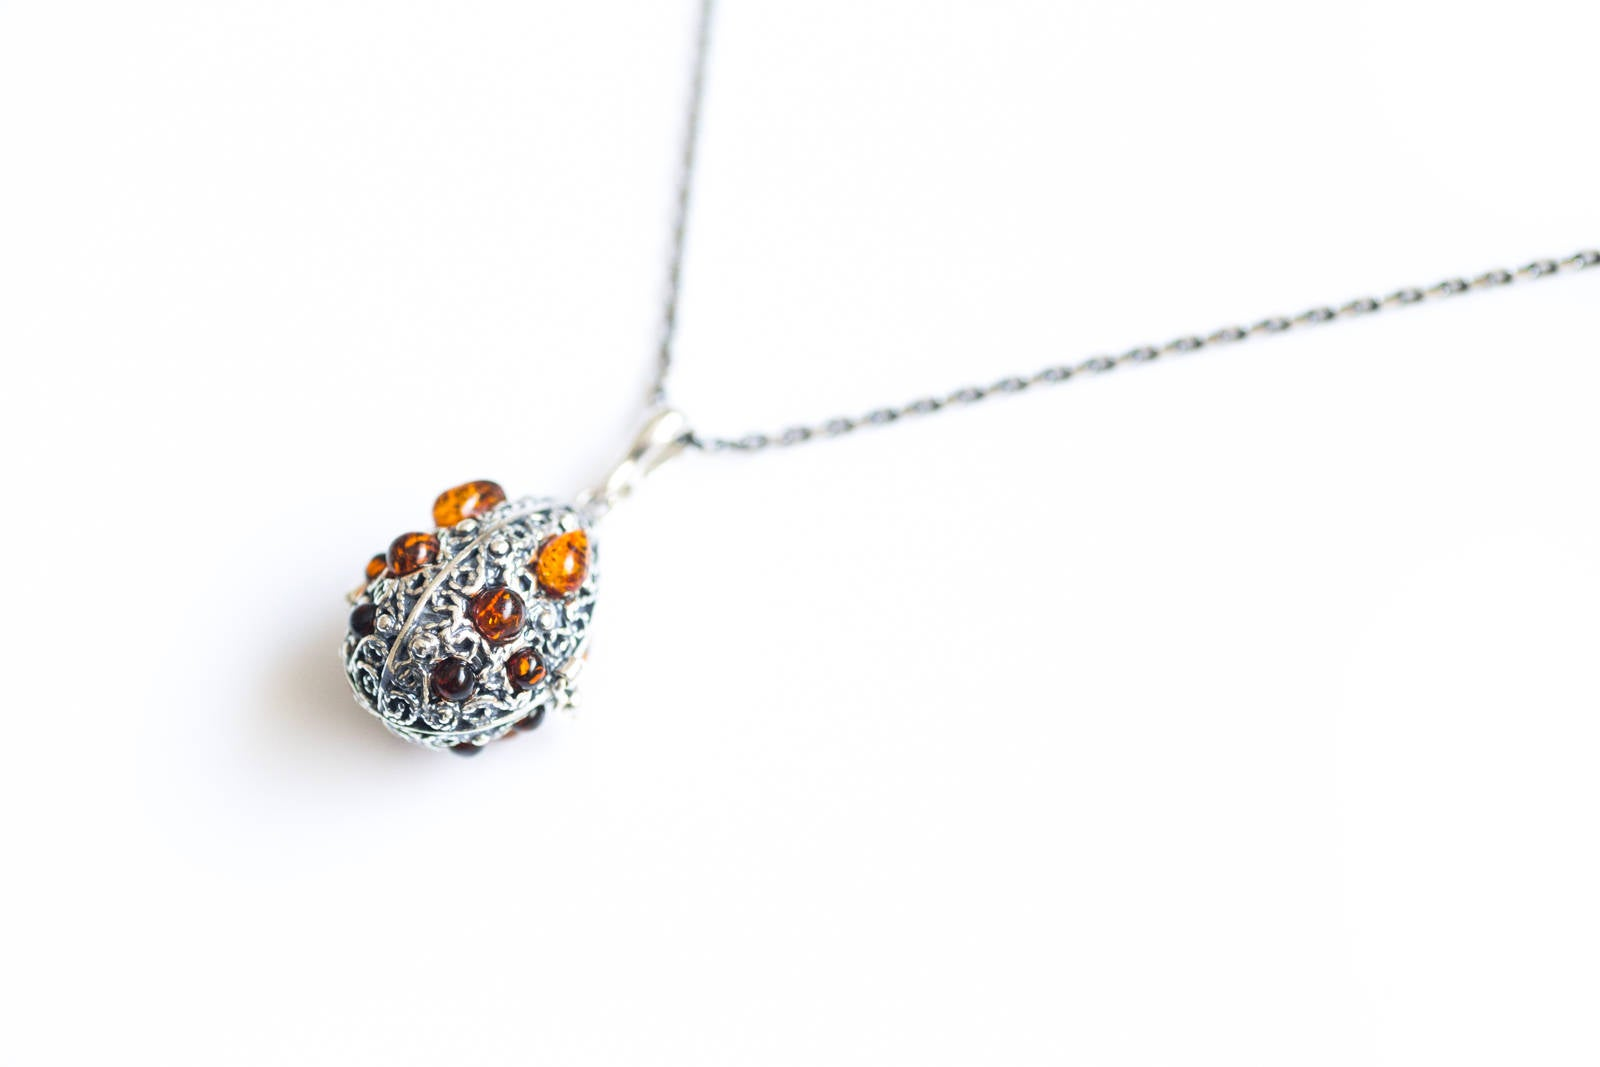 Fabergé Inspired Amber Egg Locket Necklace